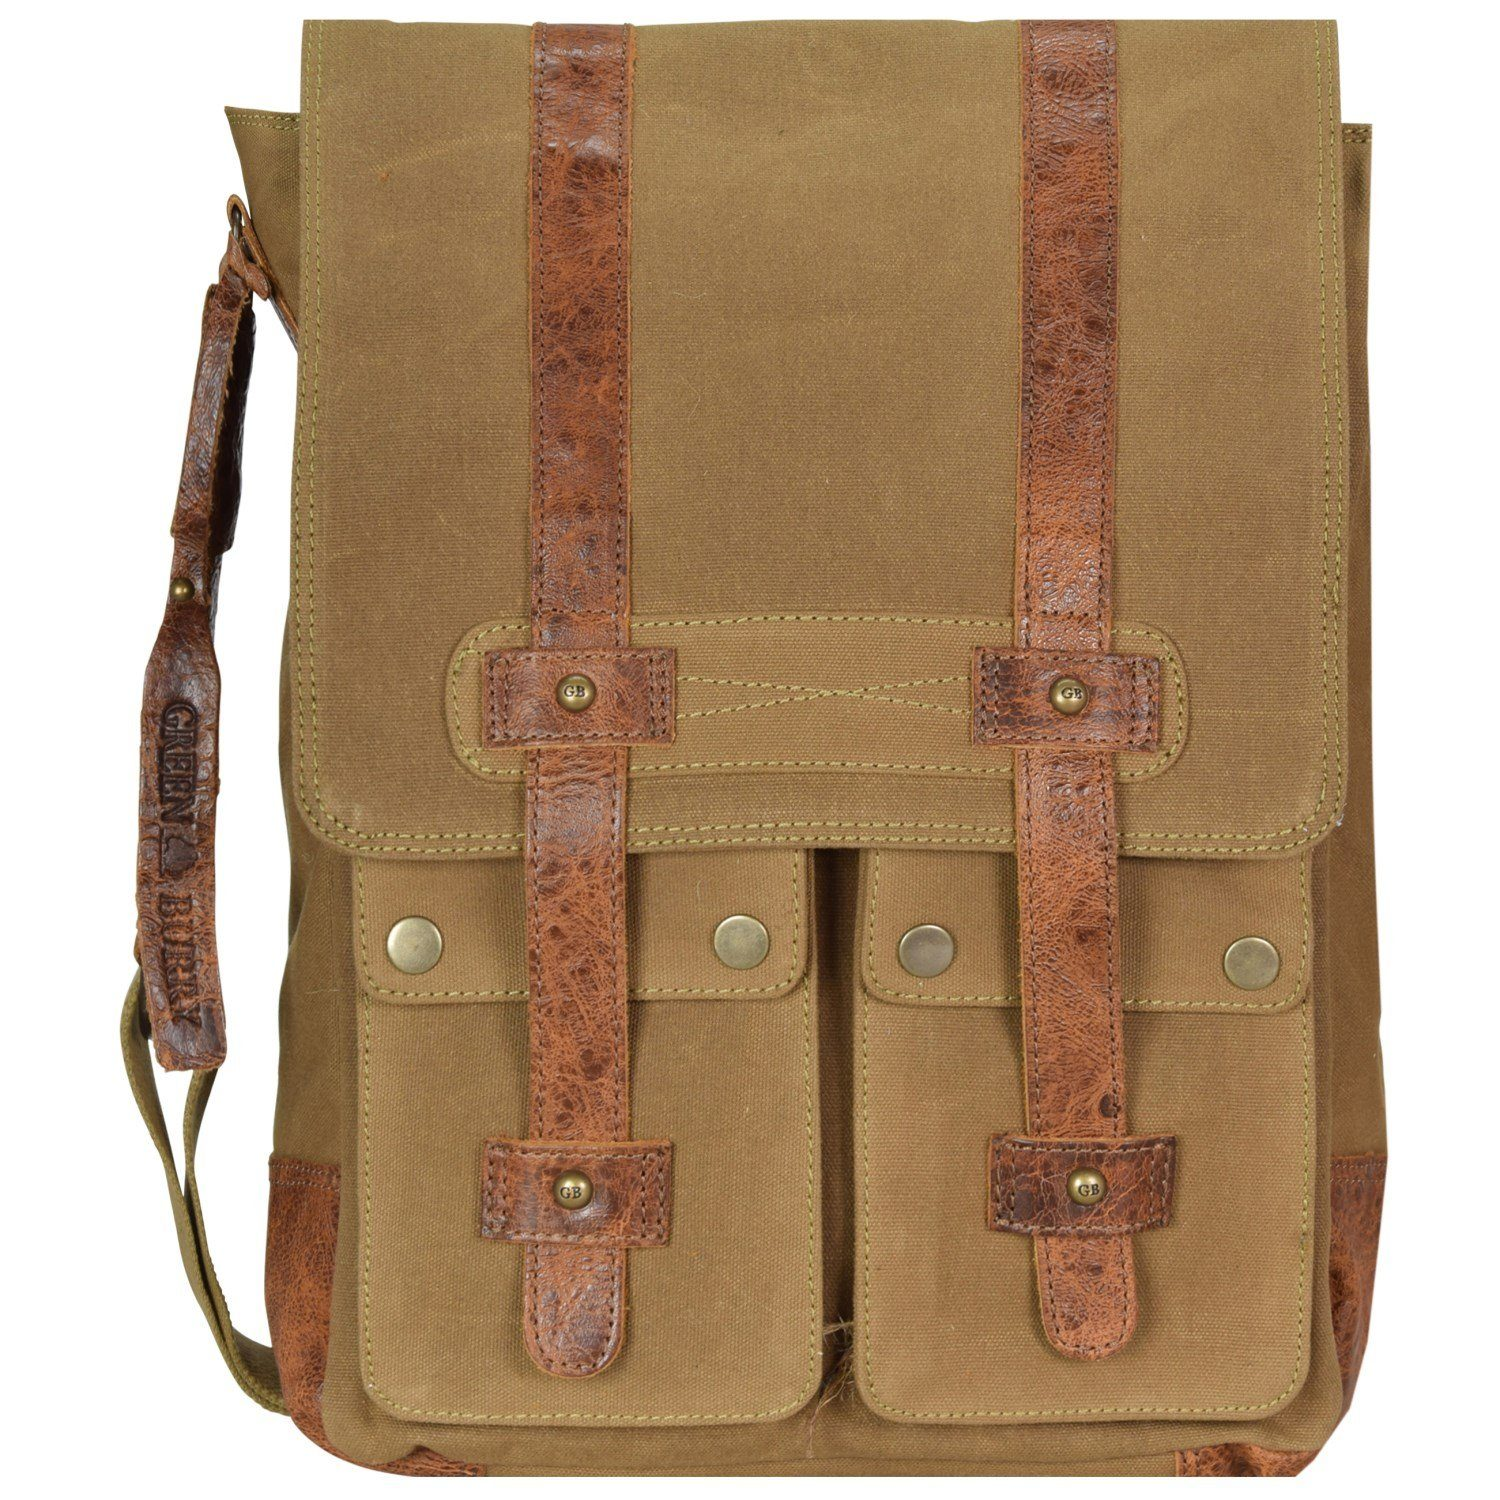 Greenburry Greenburry White Spirit Harley Umhängetasche 33 cm Tabletfach